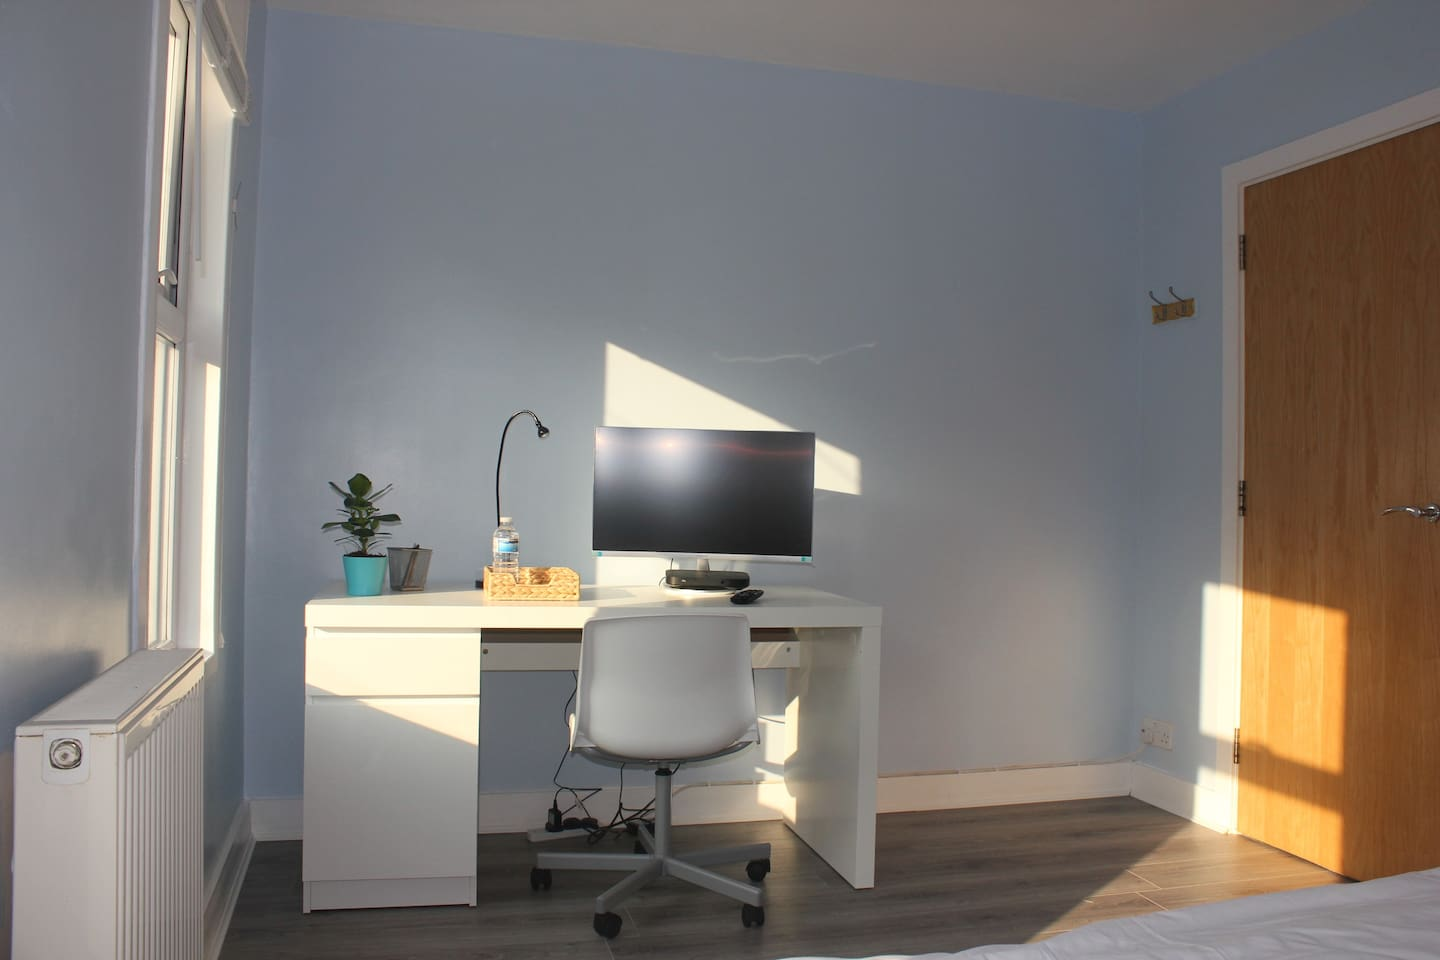 Guest Room - Study Desk + Sky Q Box